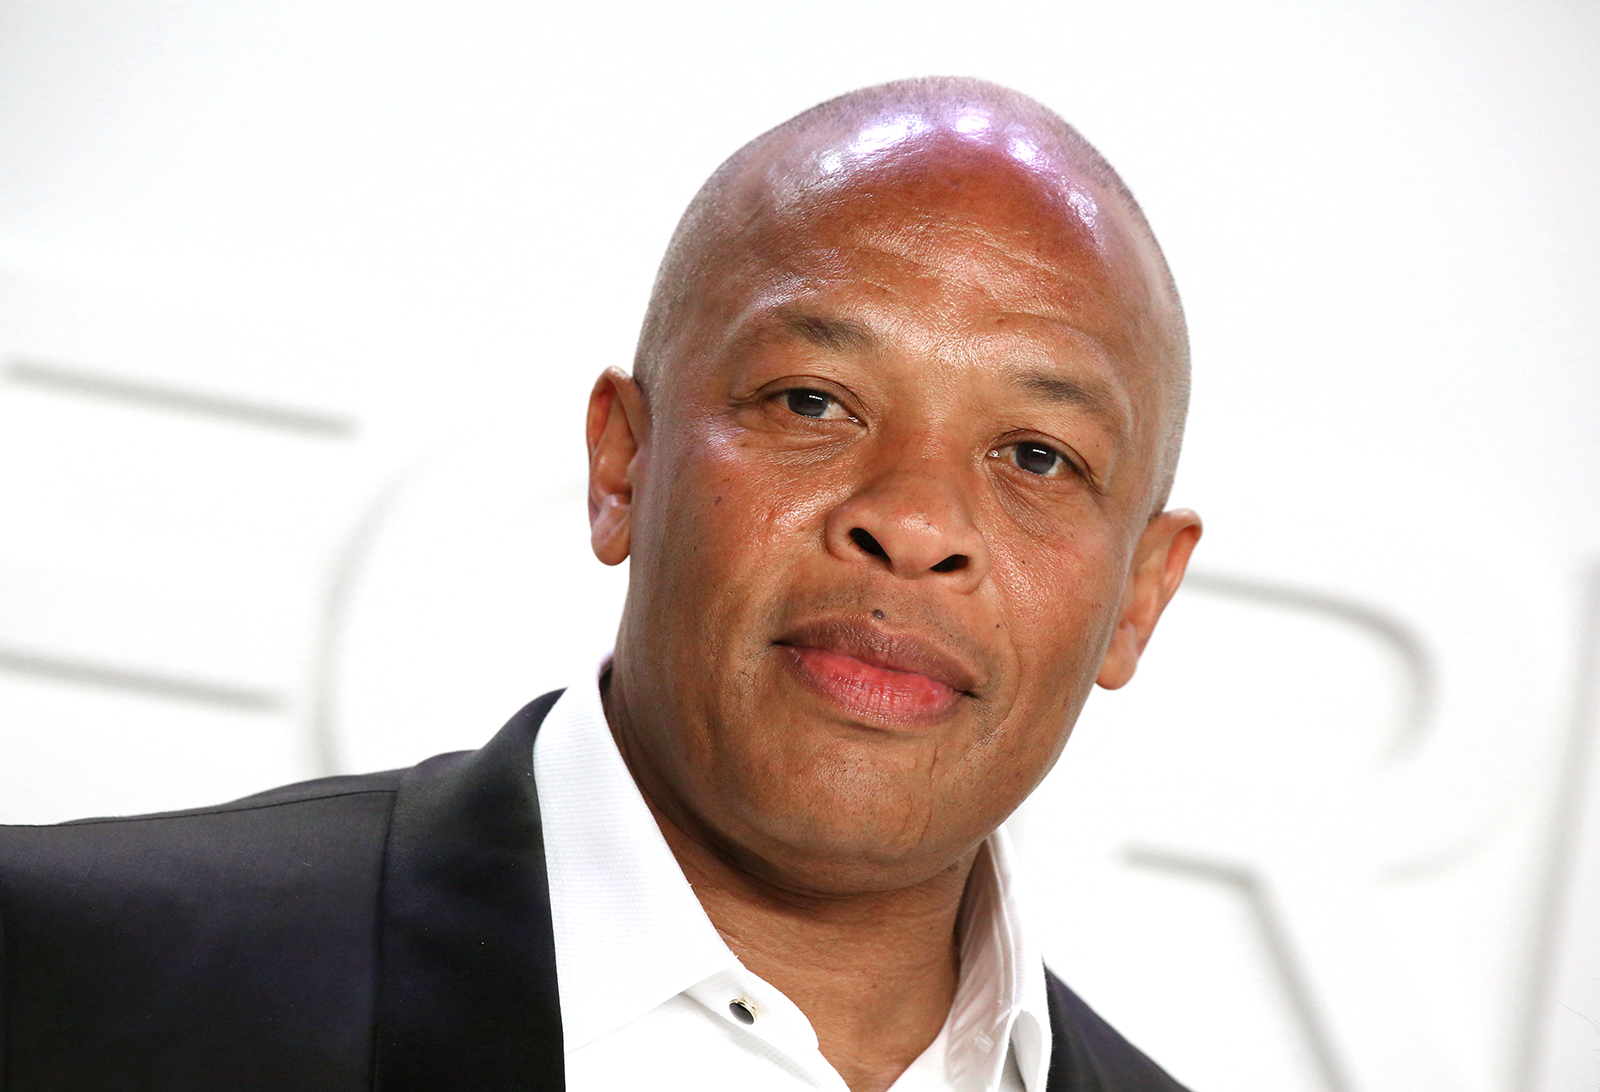 Dr. Dre is back home after being hospitalized in Los Angeles